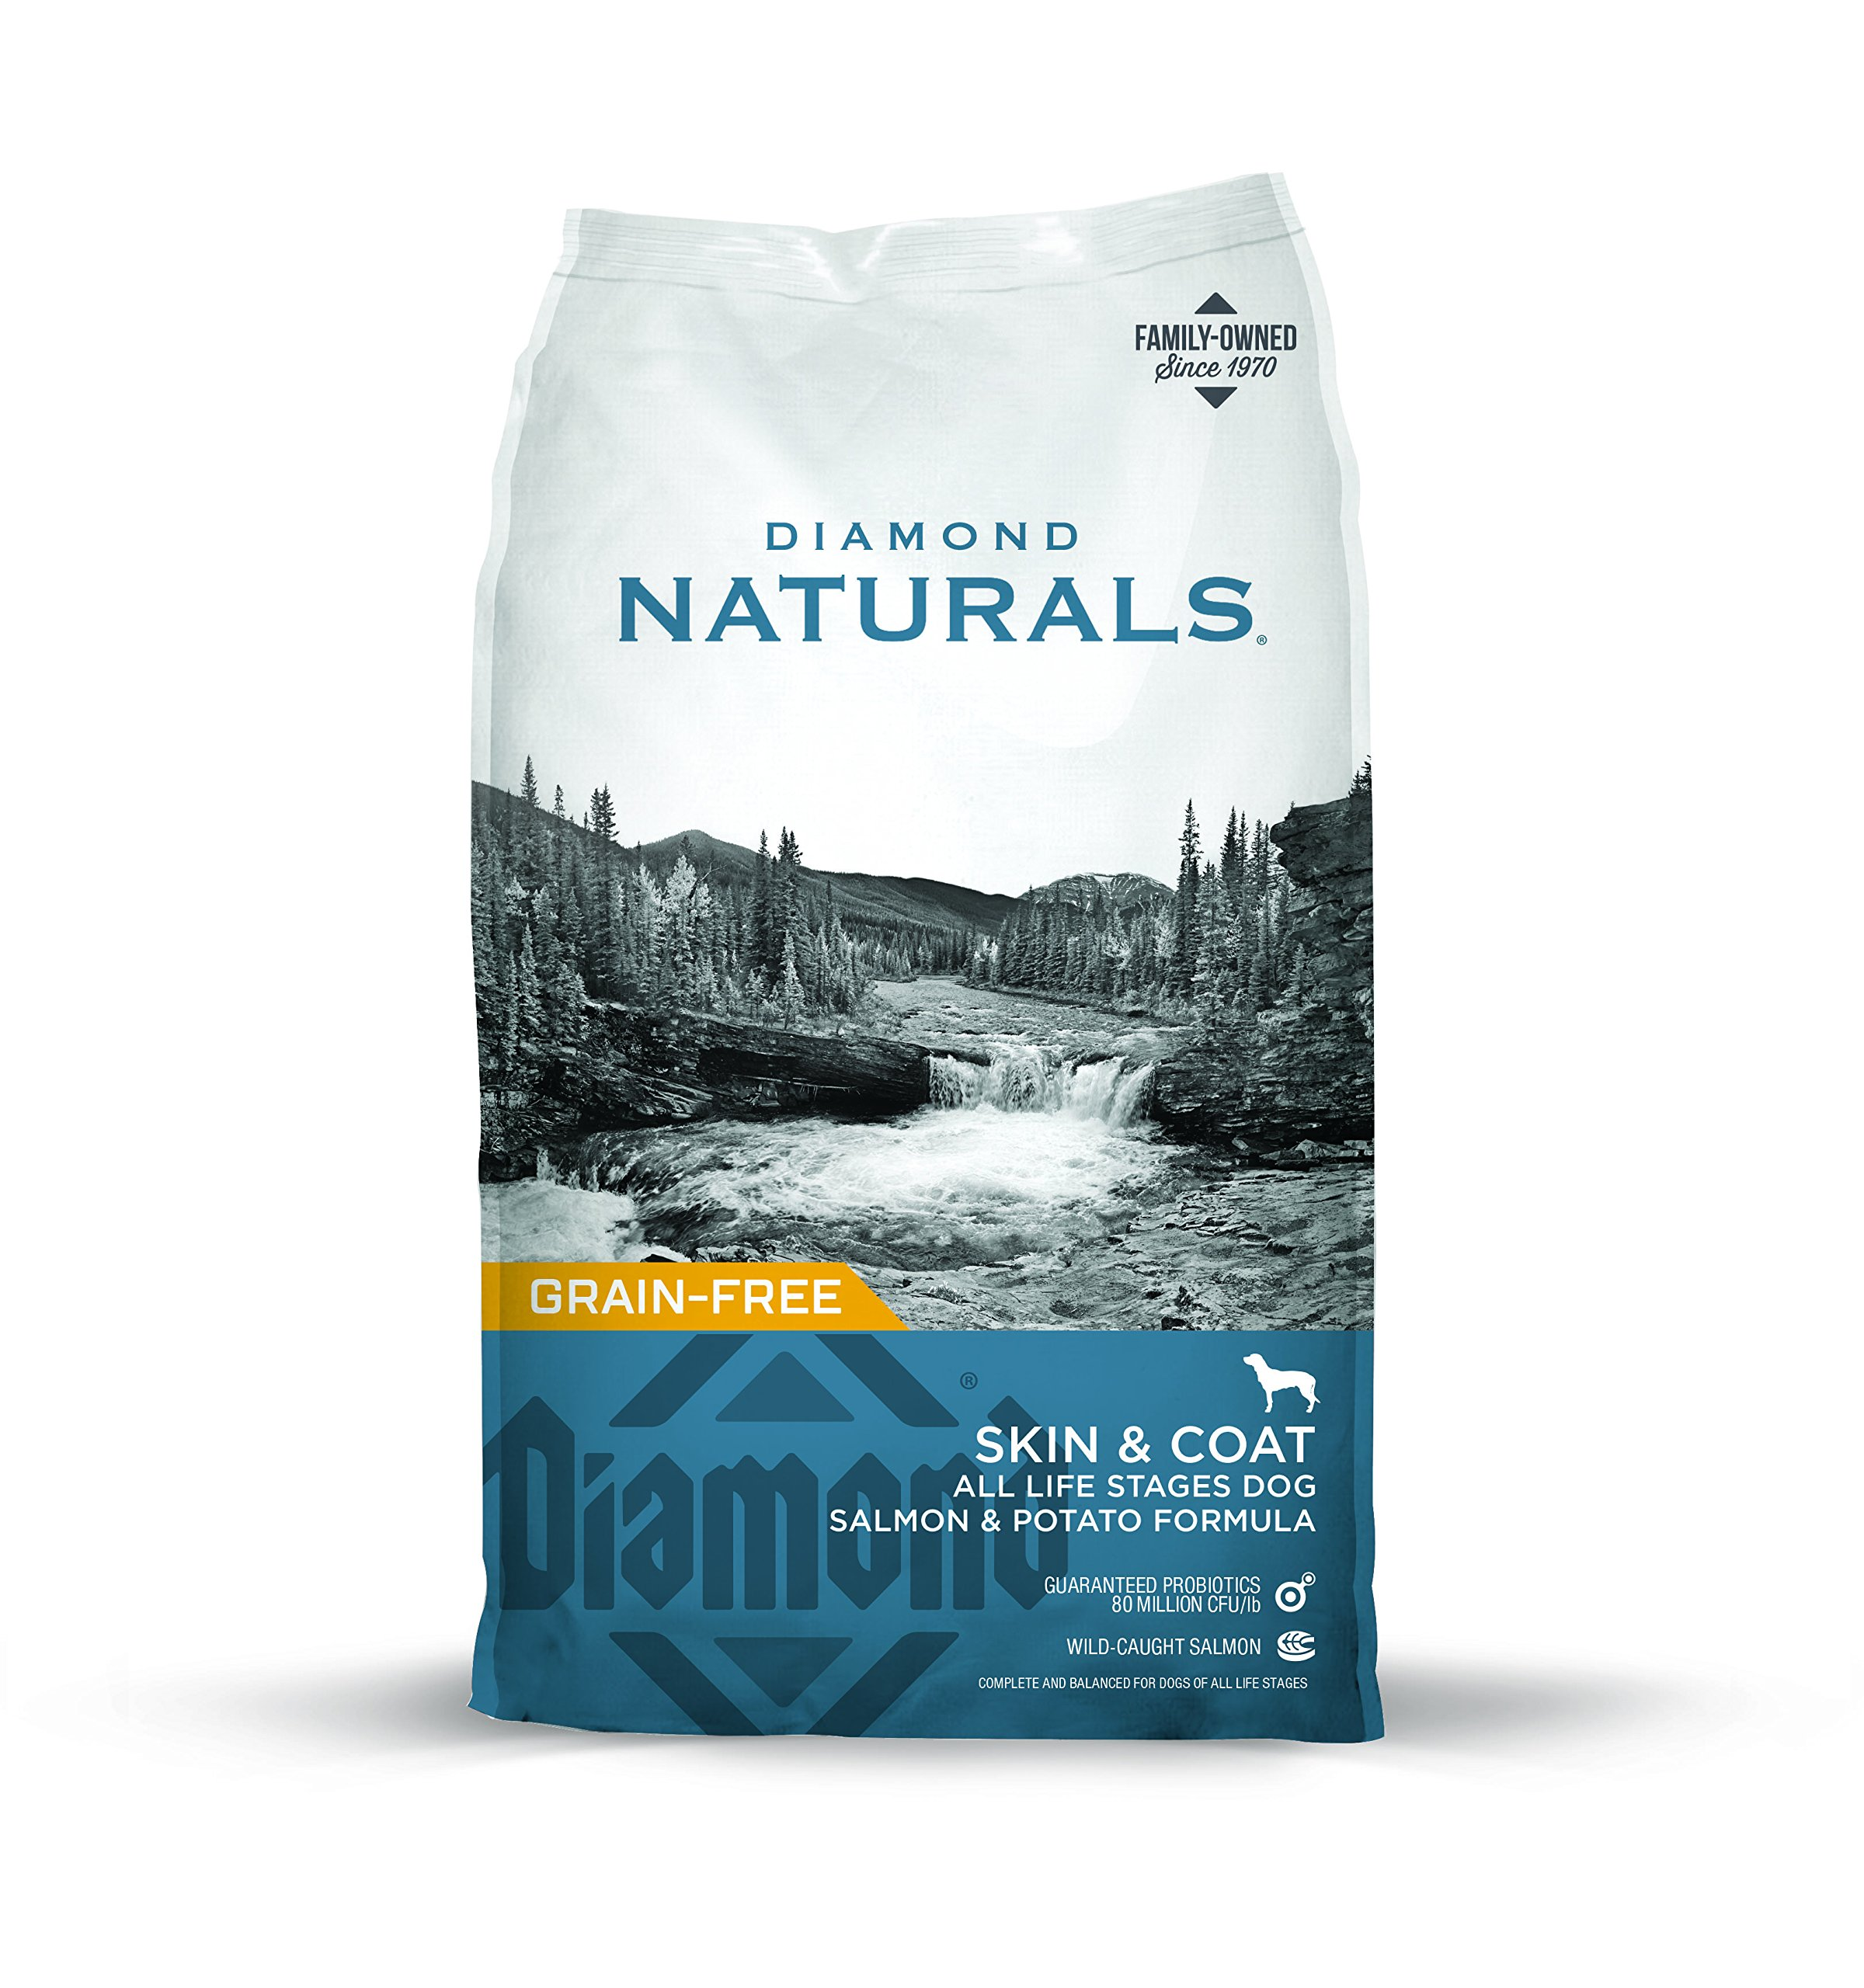 Diamond Naturals Skin & Coat Real Meat Recipe Dry Dog Food with Natural Ingredients and Wild Caught Salmon